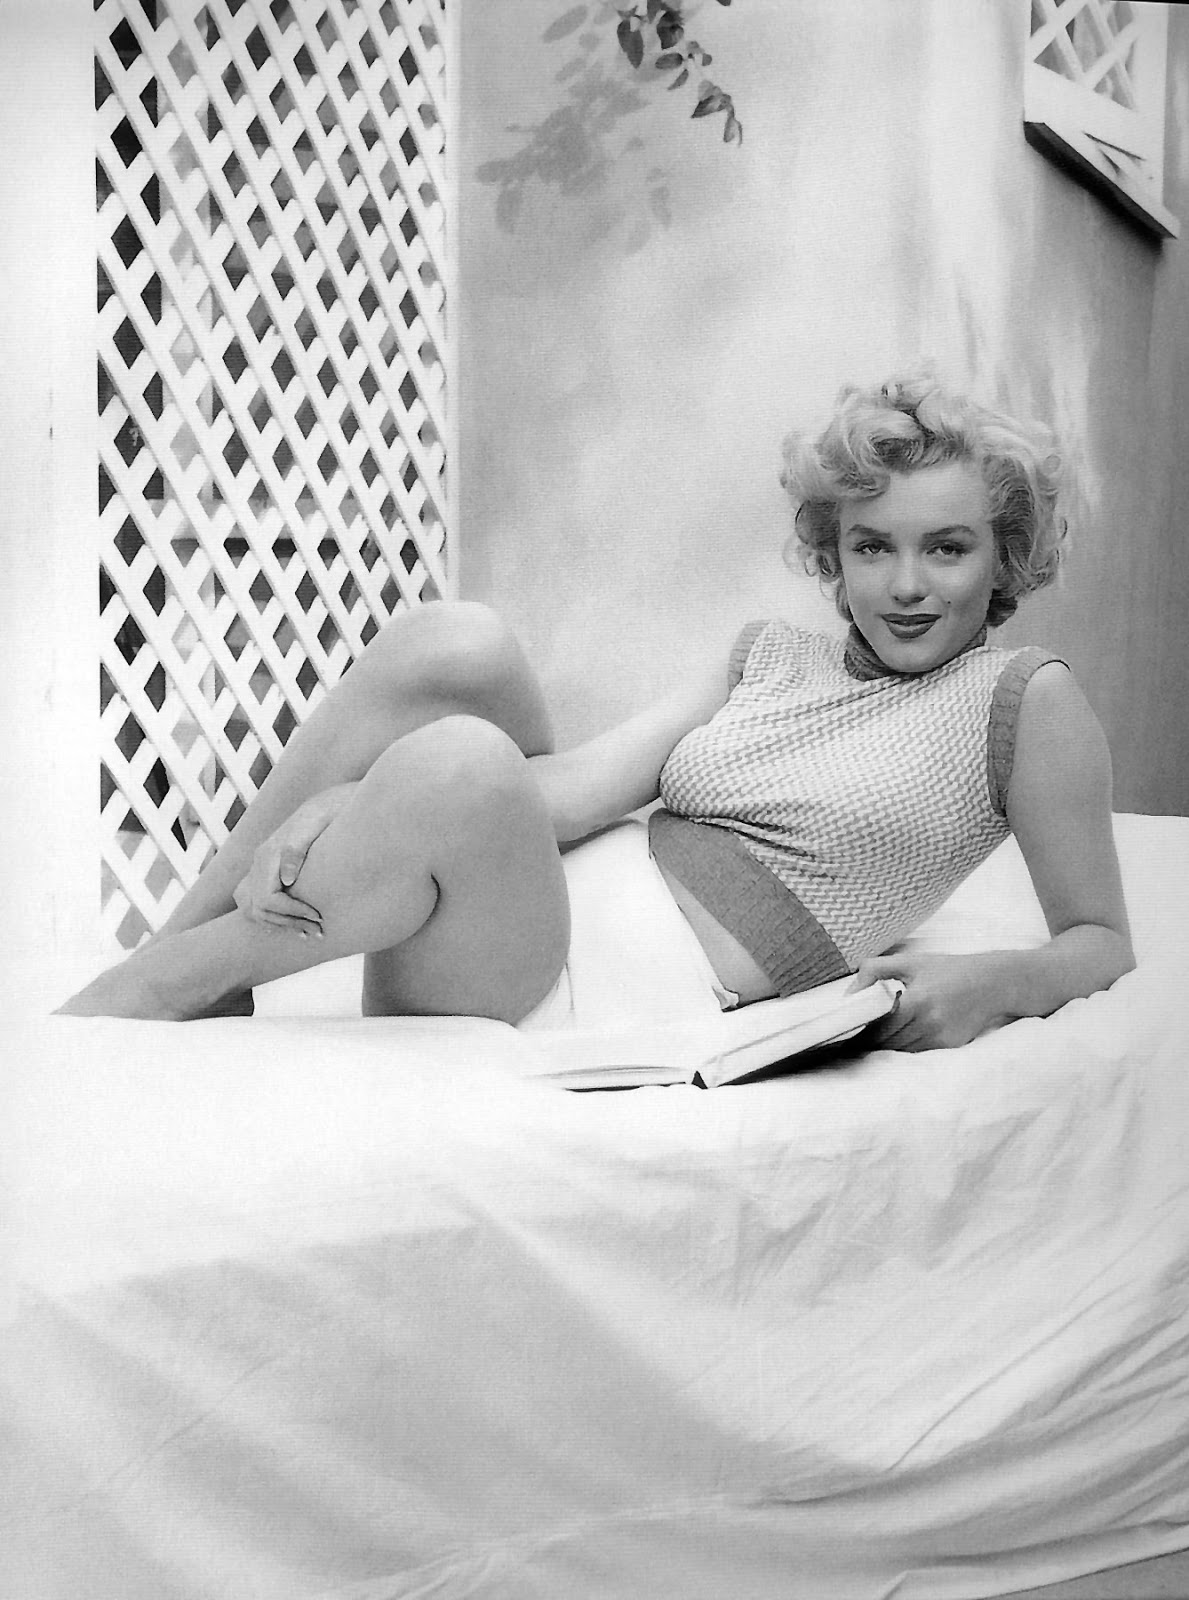 the life and career of marilyn monroe Marilyn monroe is widely regarded as the most iconic hollywood actress of all time her sensuality, upbeat personality, beauty mark, and platinum hair made her an unforgettable sex symbol of the 20th century.